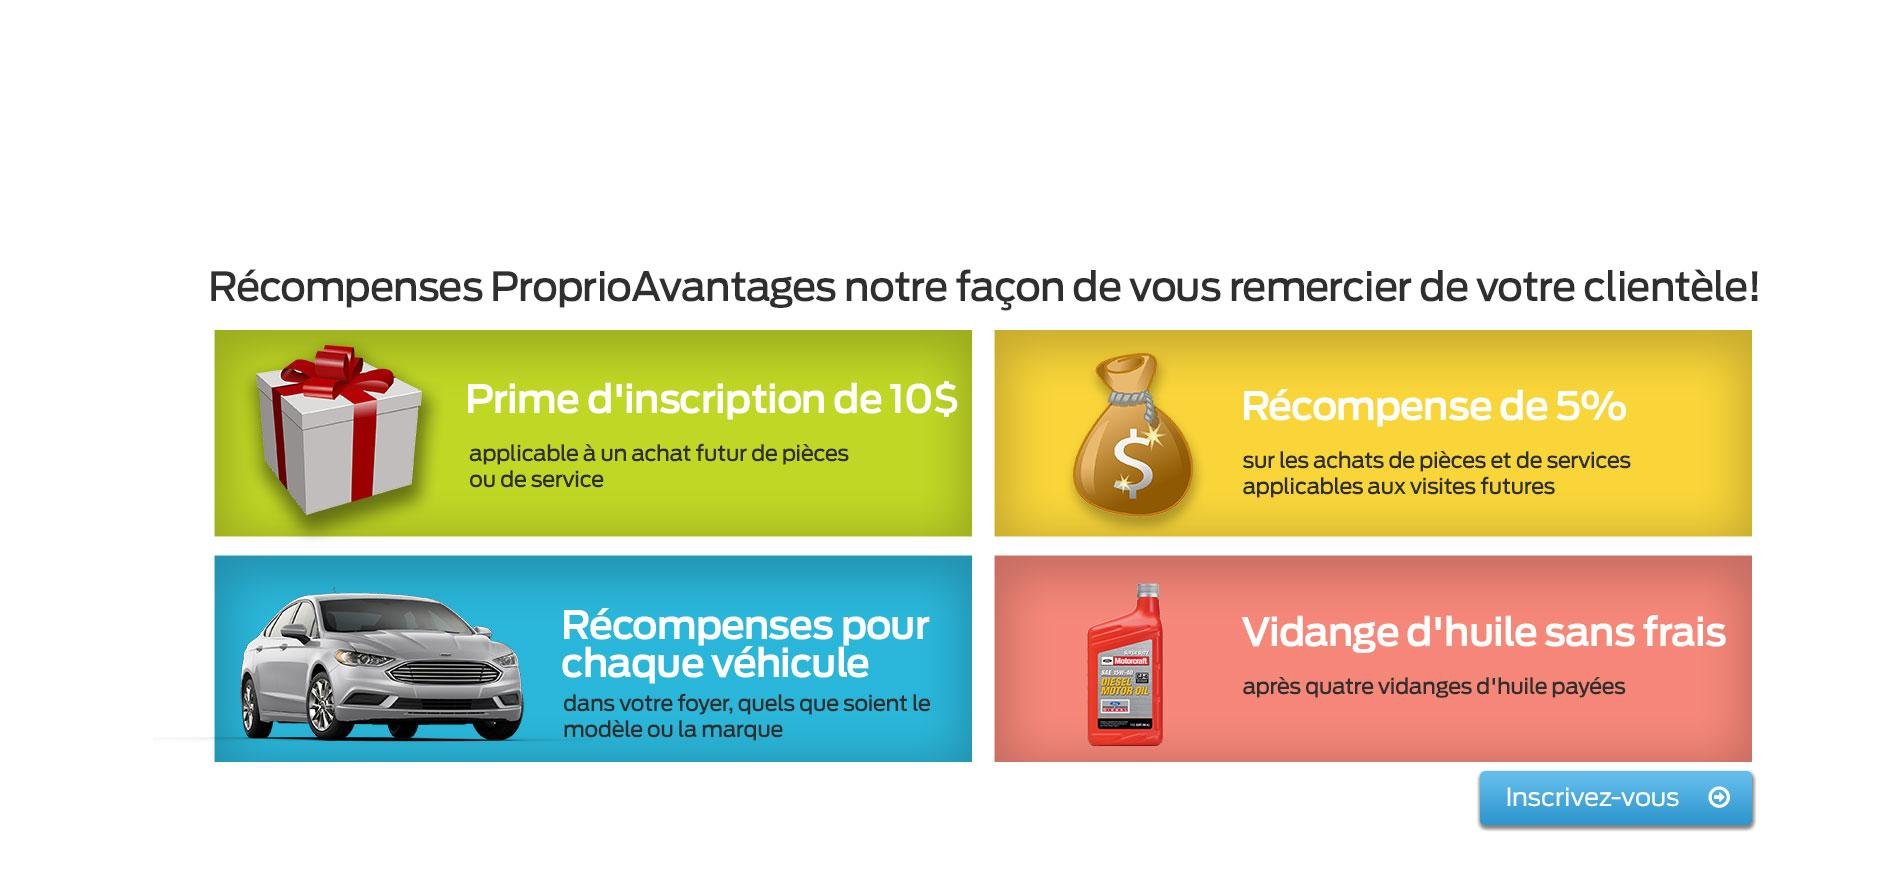 Récompenses ProprioAvantages